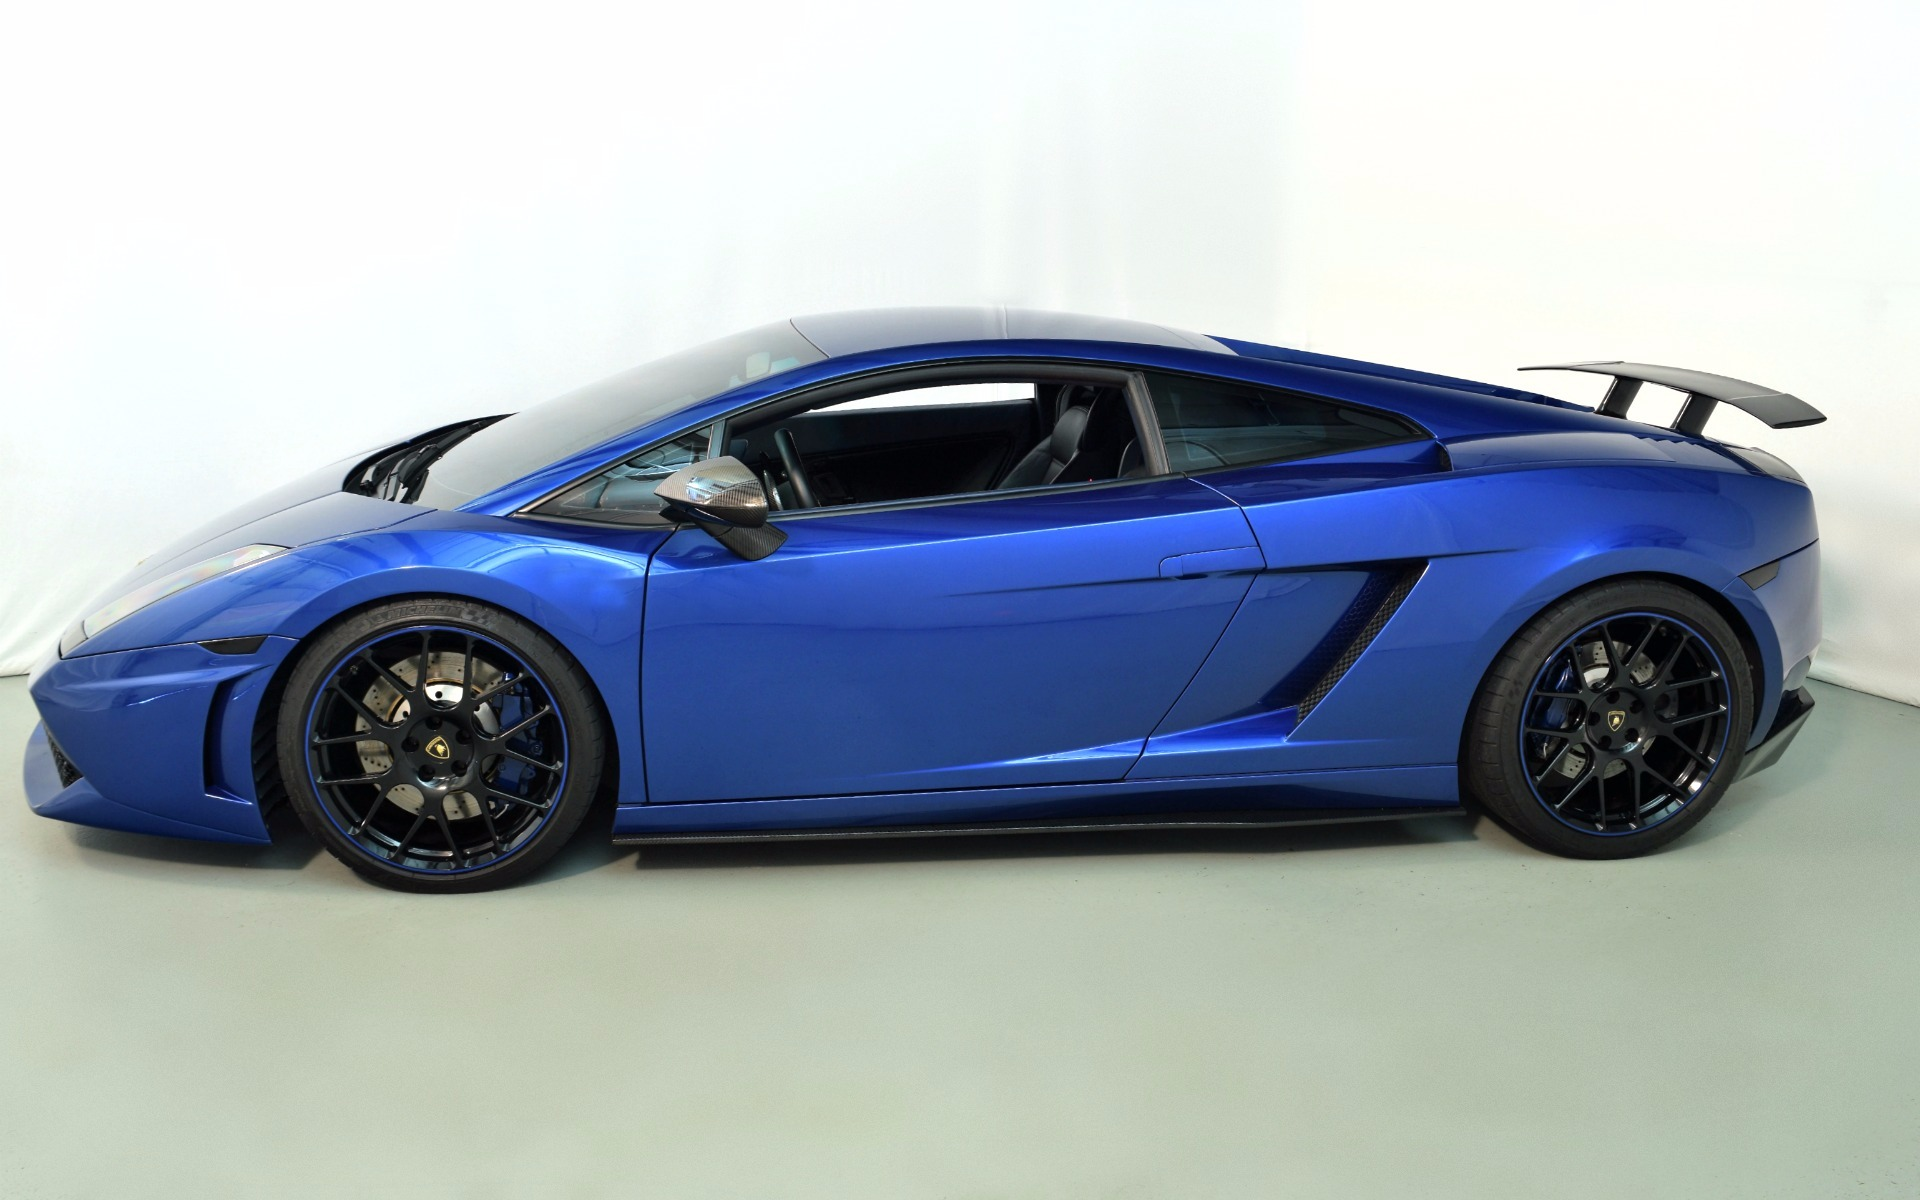 2005 lamborghini gallardo for sale in norwell ma a01997. Black Bedroom Furniture Sets. Home Design Ideas